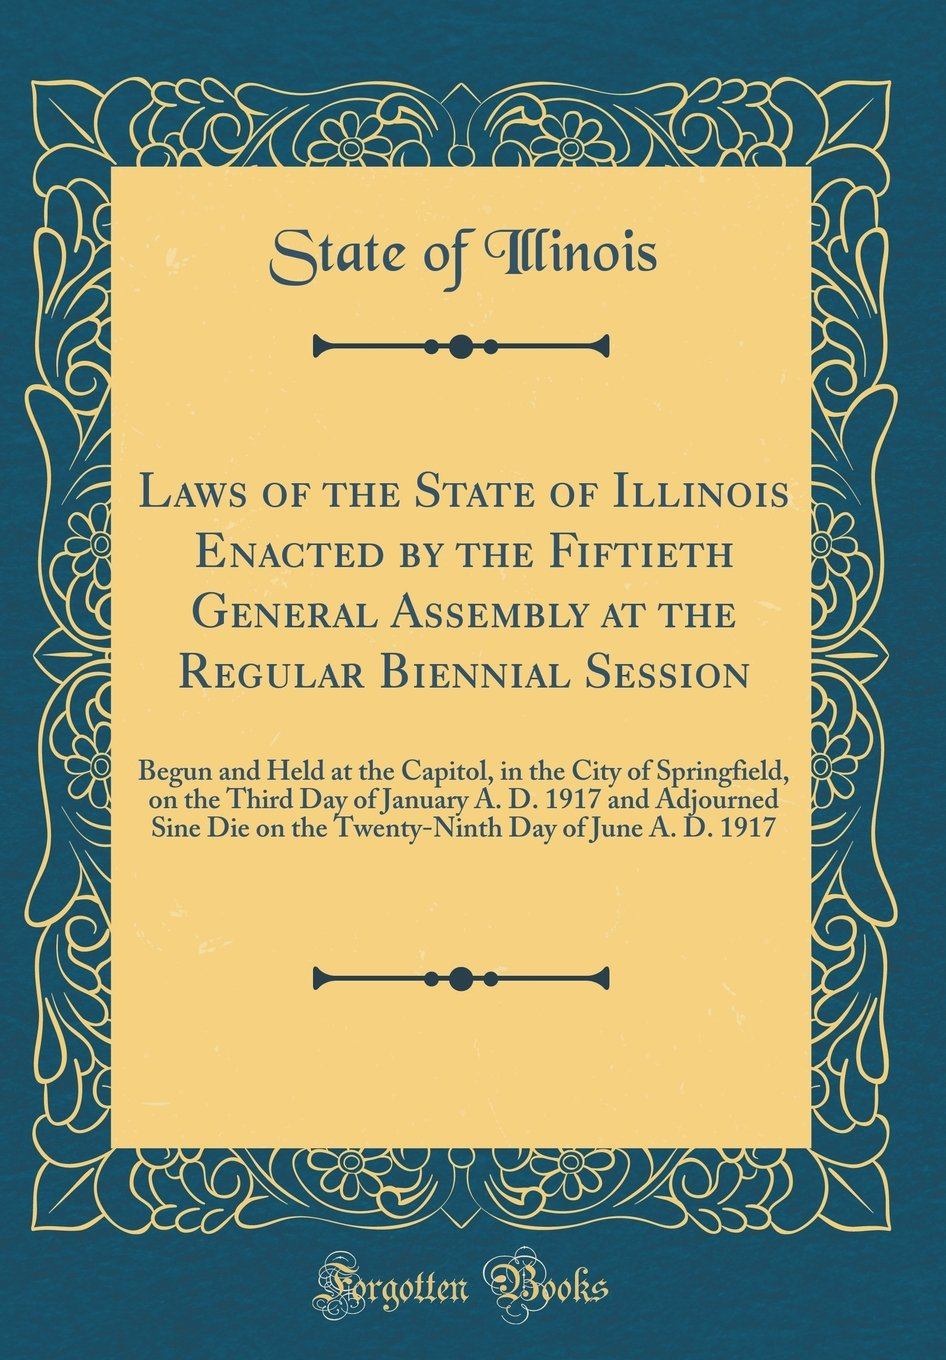 Laws of the State of Illinois Enacted by the Fiftieth General Assembly at the Regular Biennial Session: Begun and Held at the Capitol, in the City of ... Sine Die on the Twenty-Ninth Day of Jun PDF